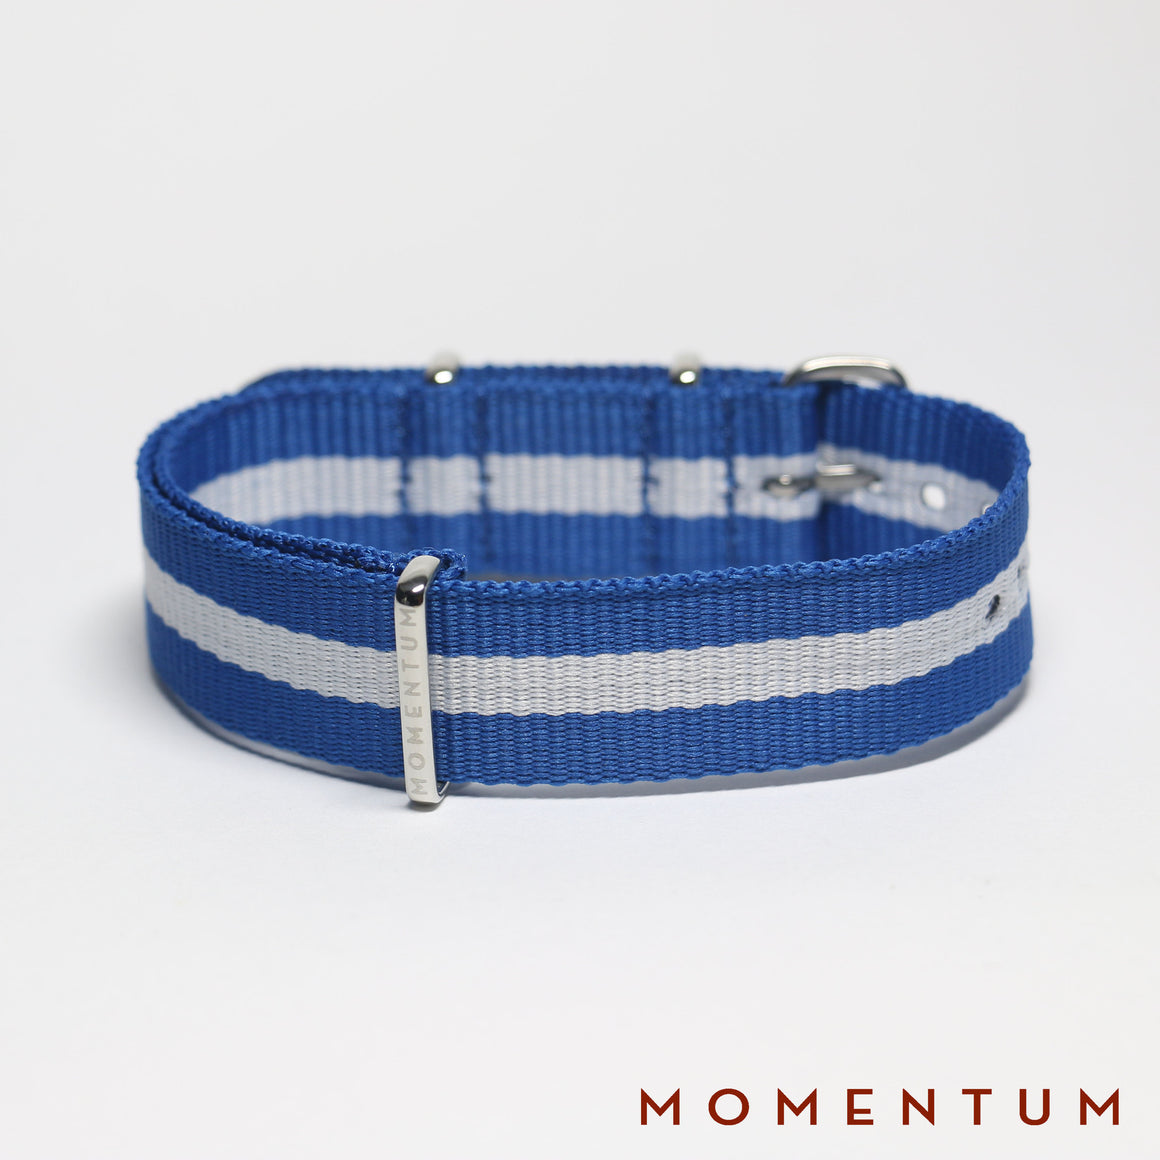 Nato Strap Light Blue & White Striped - Momentum Dubai